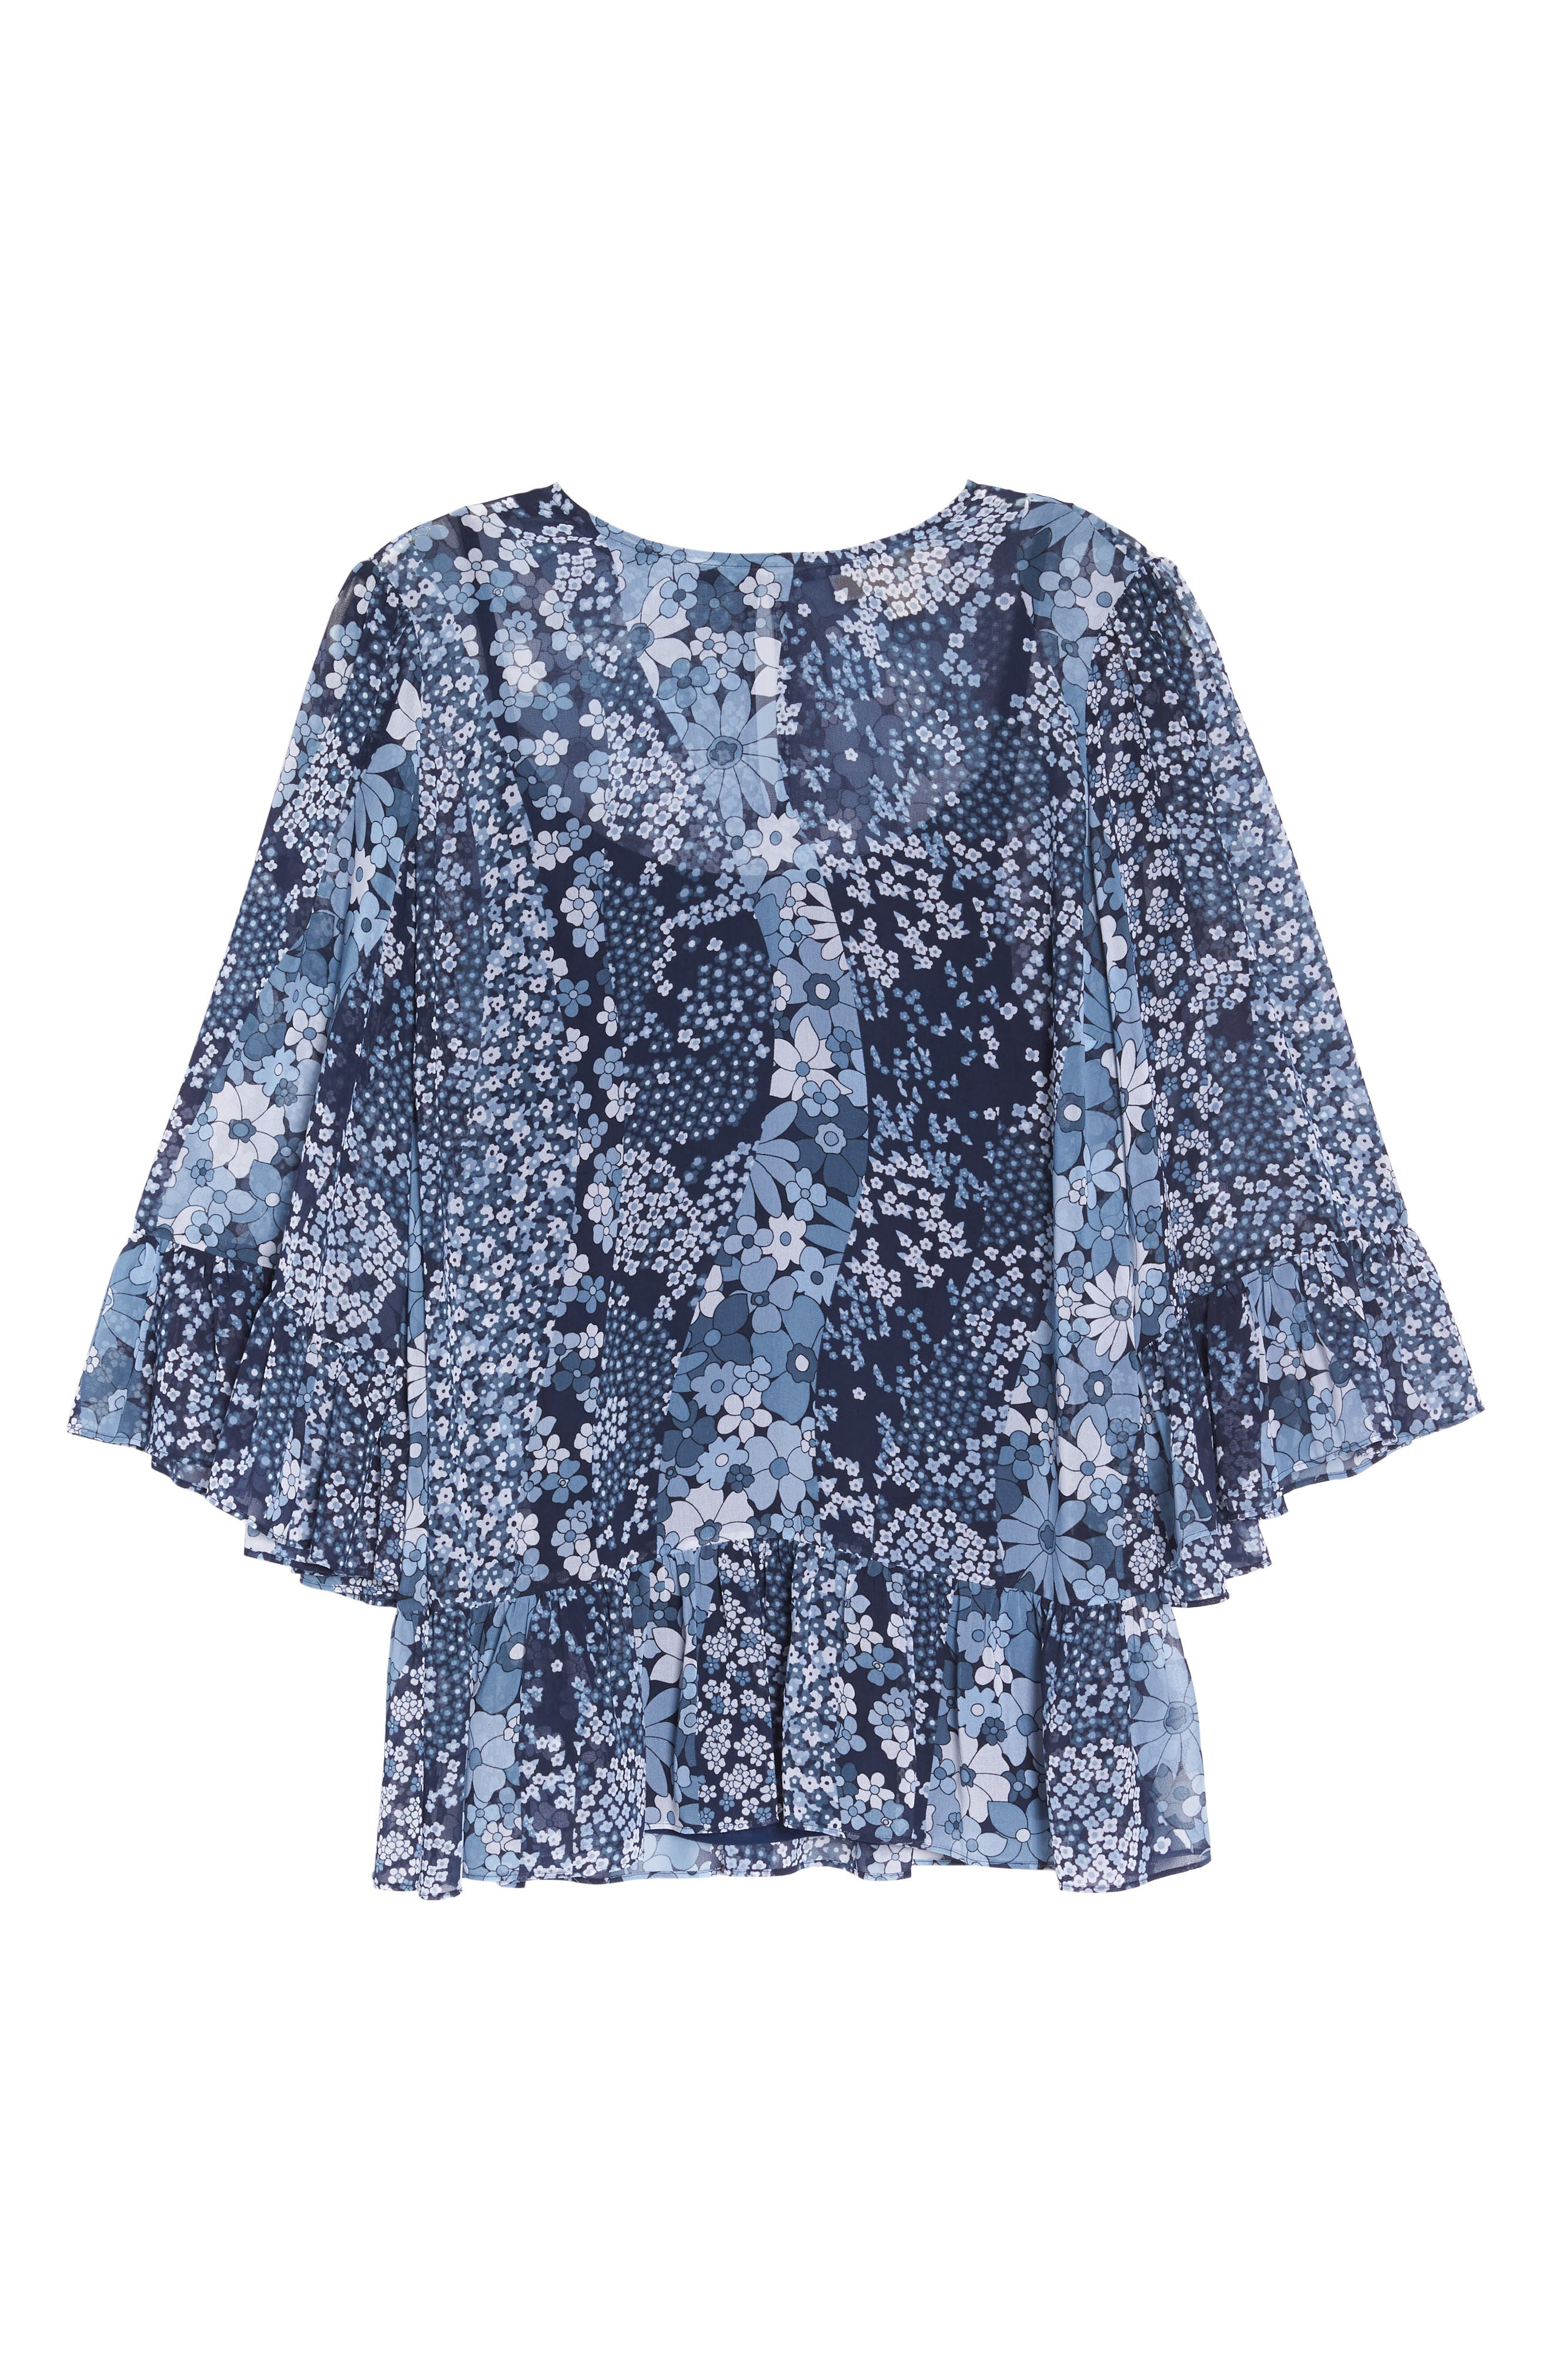 Patchwork Flowers Top,                             Alternate thumbnail 7, color,                             True Navy/ Light Chambray